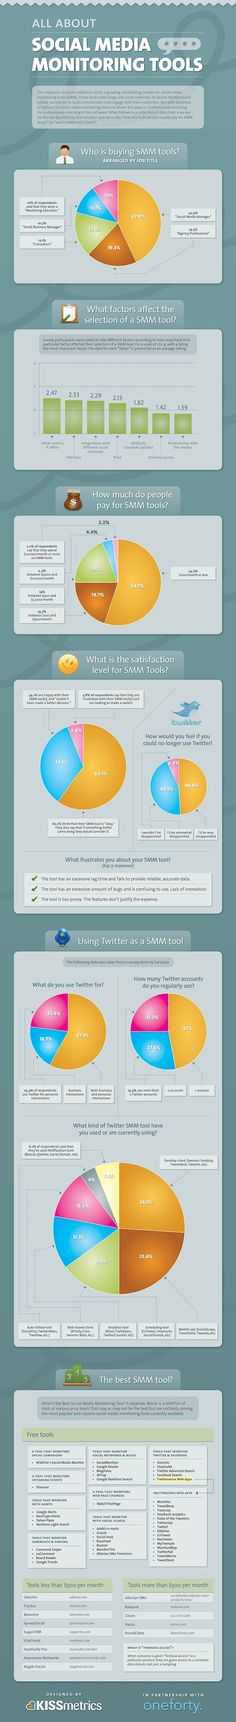 Excellent roundup and explanation of Social Media Monitoring Tools thanks to oneforty.com and kissmetrics.com.     Oneforty surveyed 150 social media professionals to learn about what their main concerns were when it came to social media monitoring. The infographic shows their main questions, as well as favorite social media monitoring tools. The list of tools at the bottom shows the most popular tools according to survey respondents who answered a question regarding which tools they use.